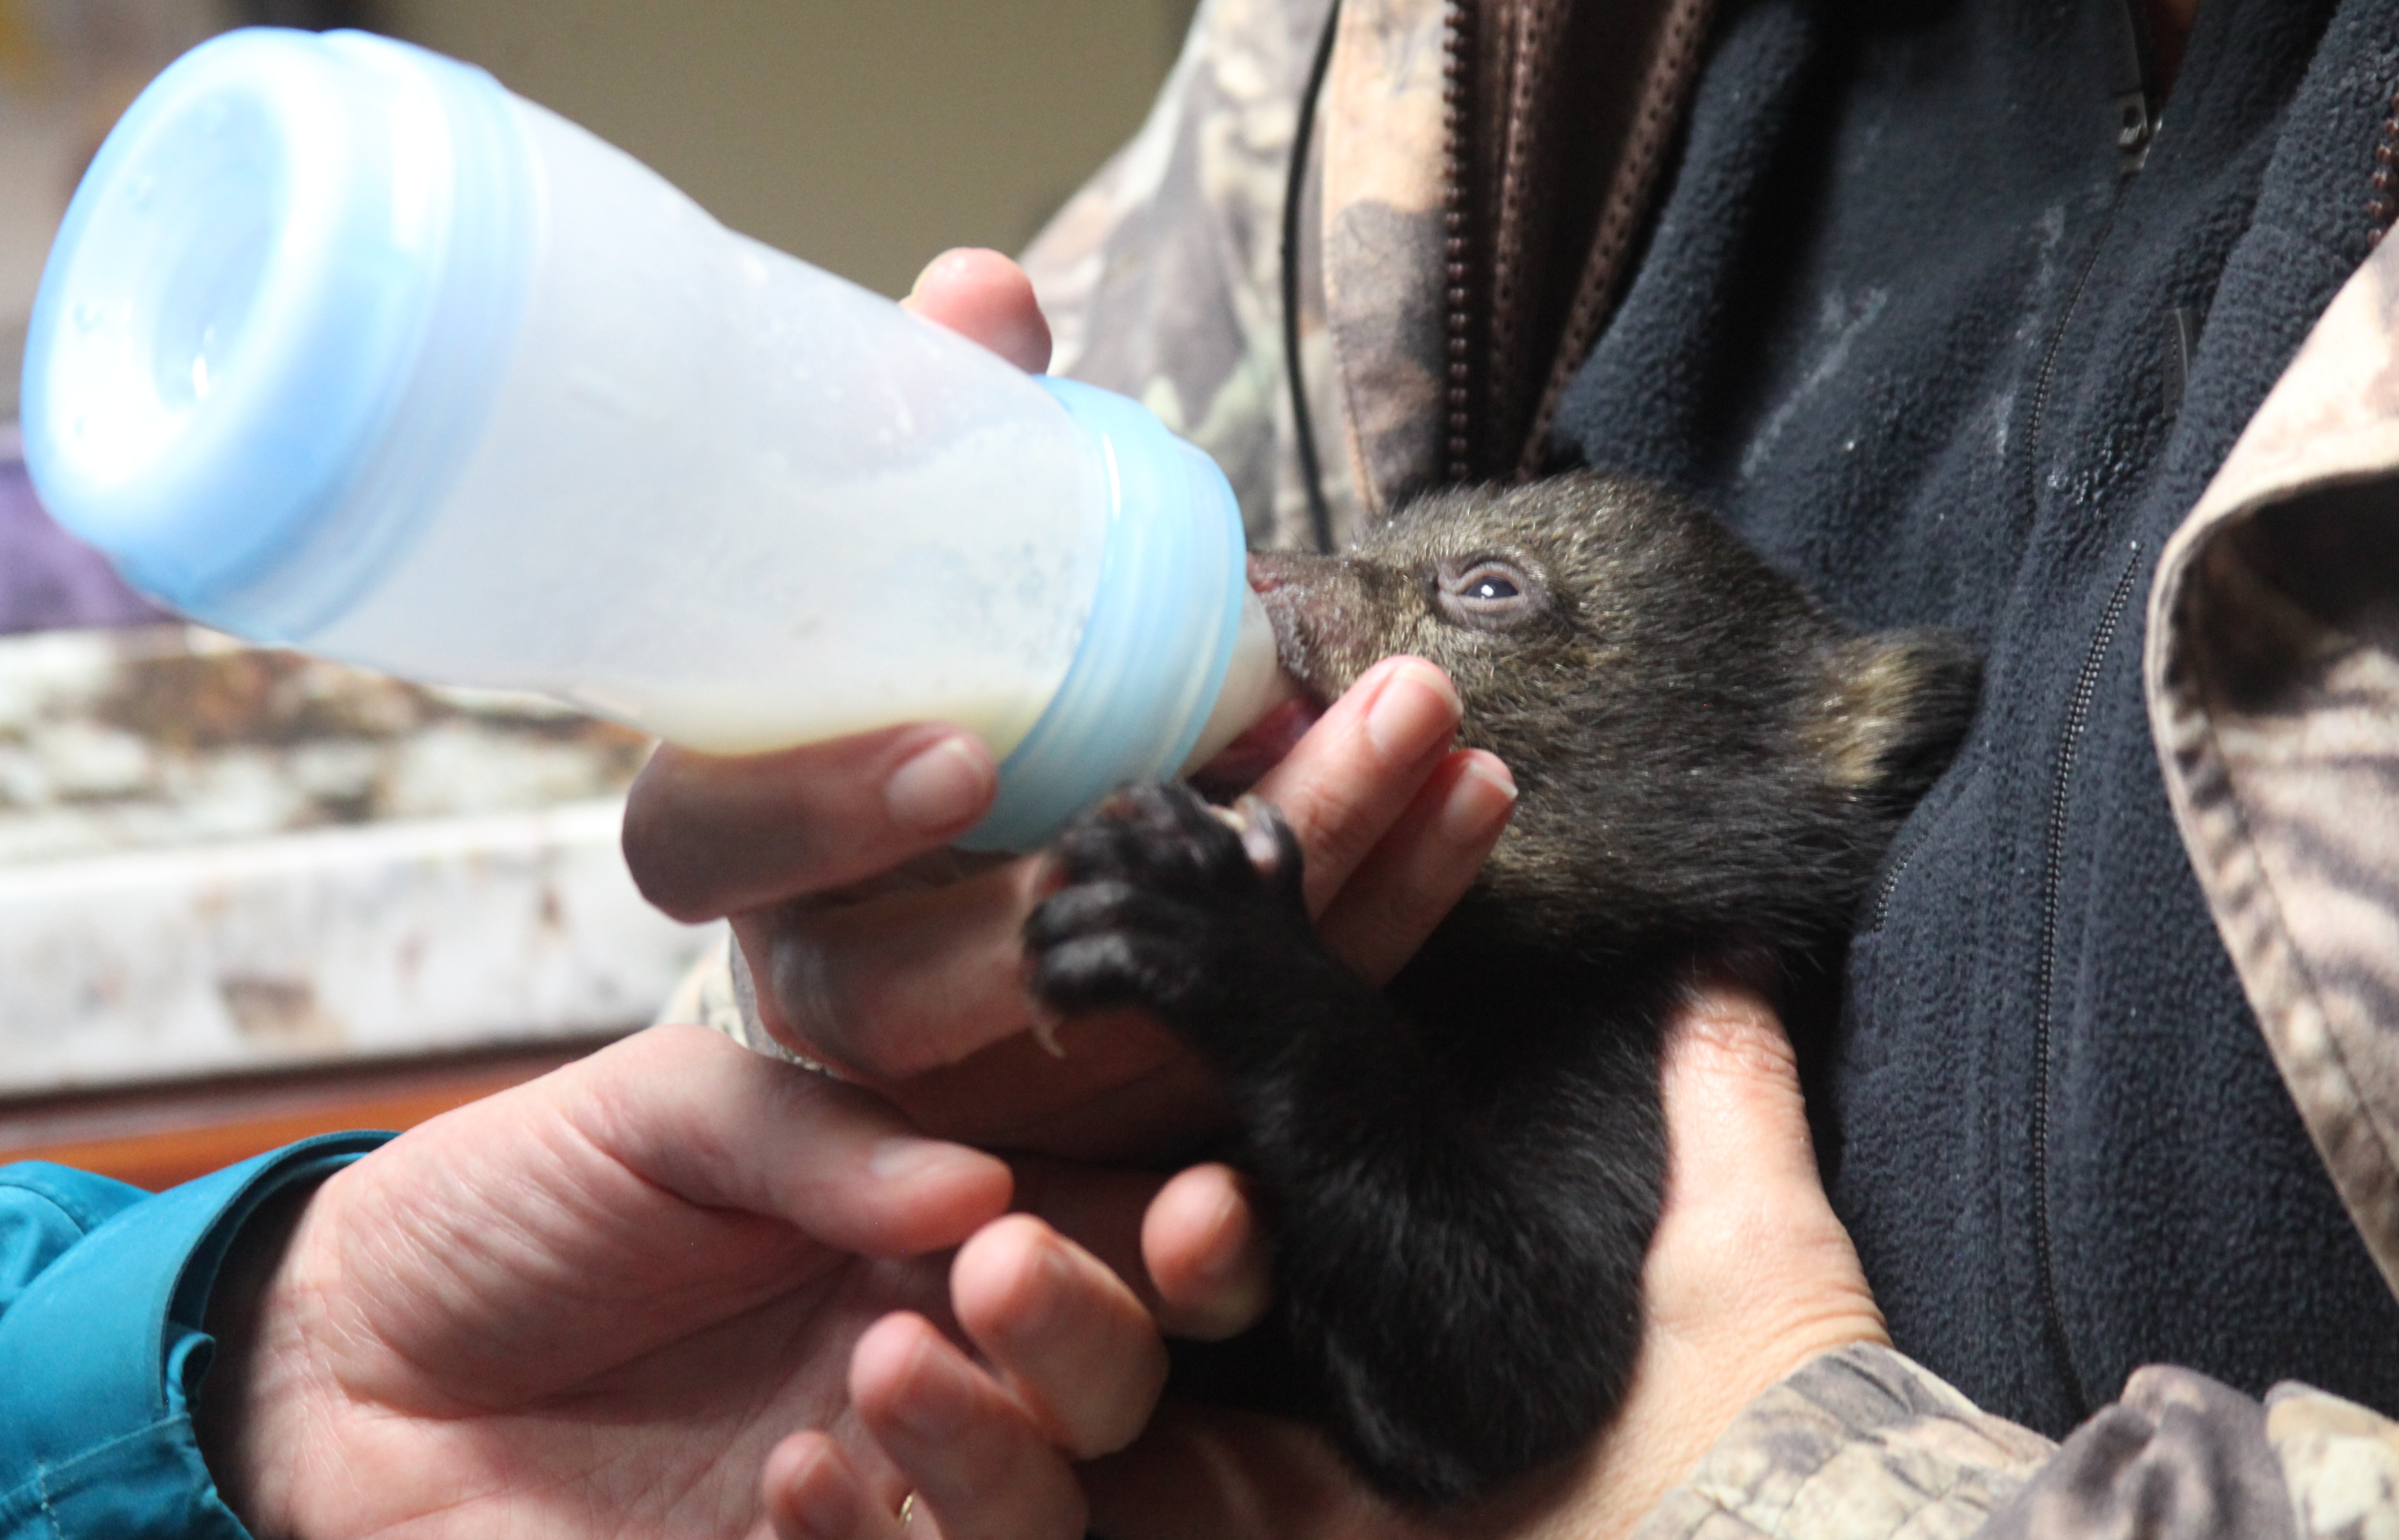 Bear cub being fed from a bottle